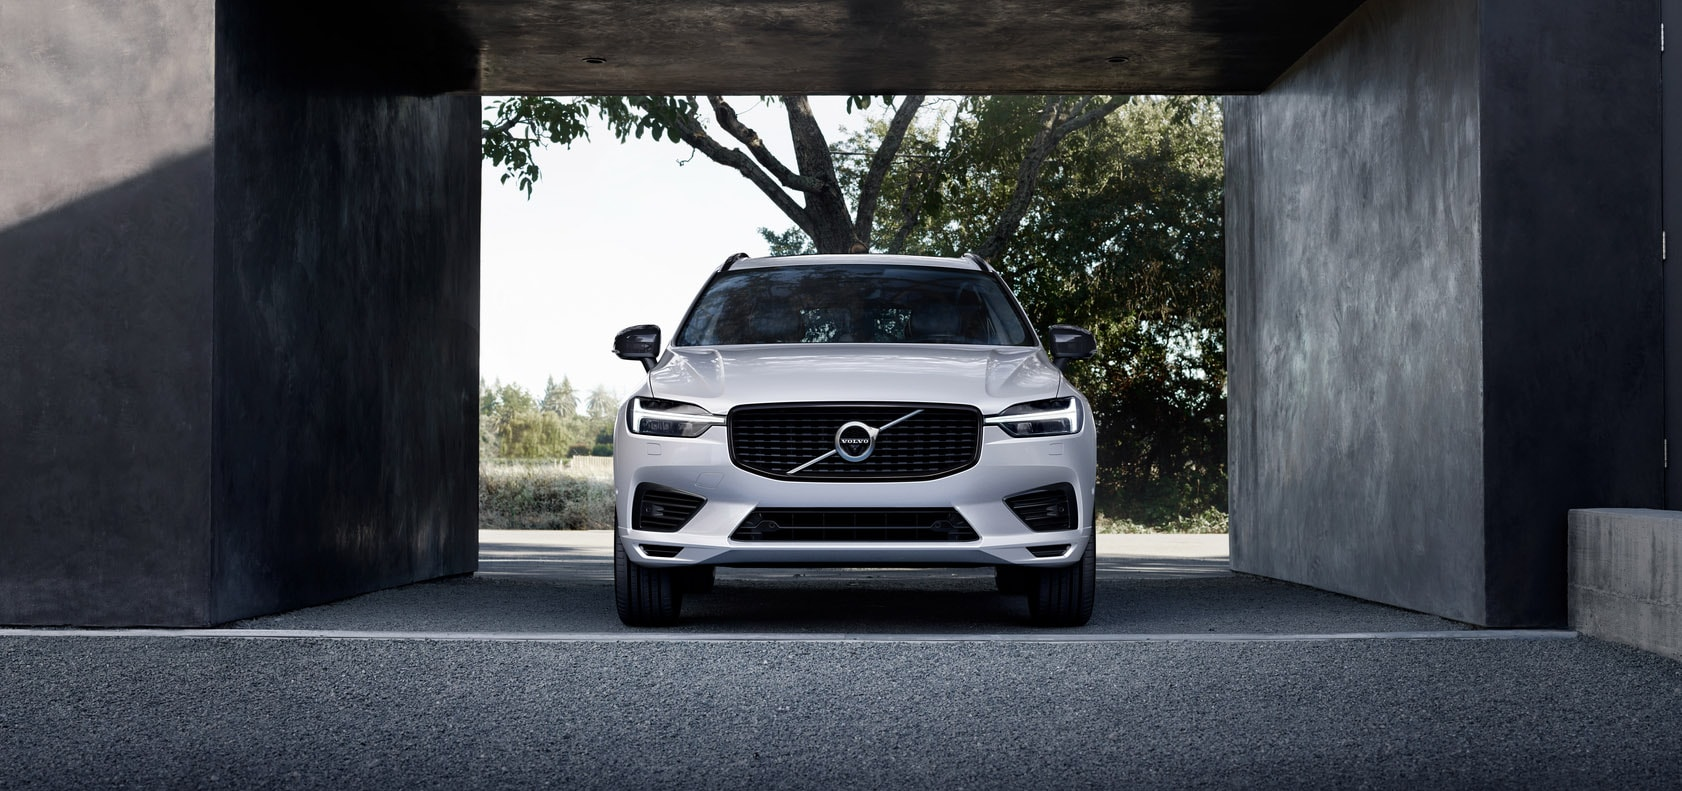 A white Volvo XC60 is parked next to a concrete building